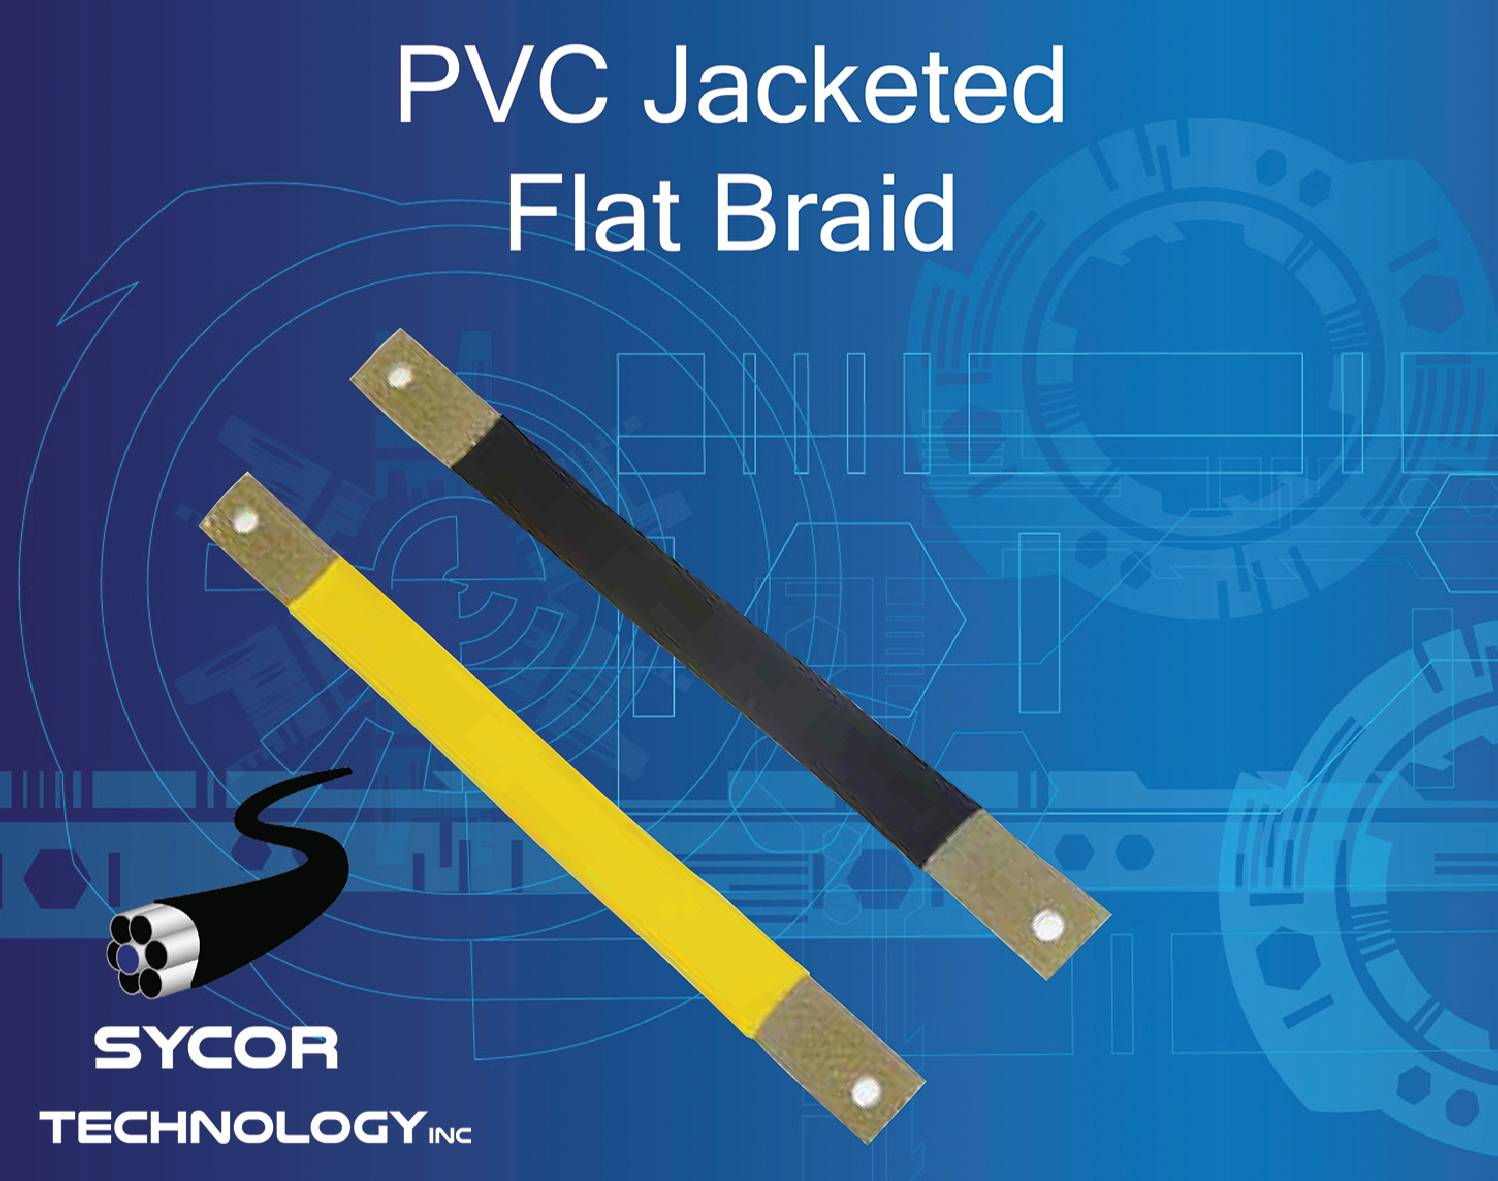 PVC Jacketed Flat Braid